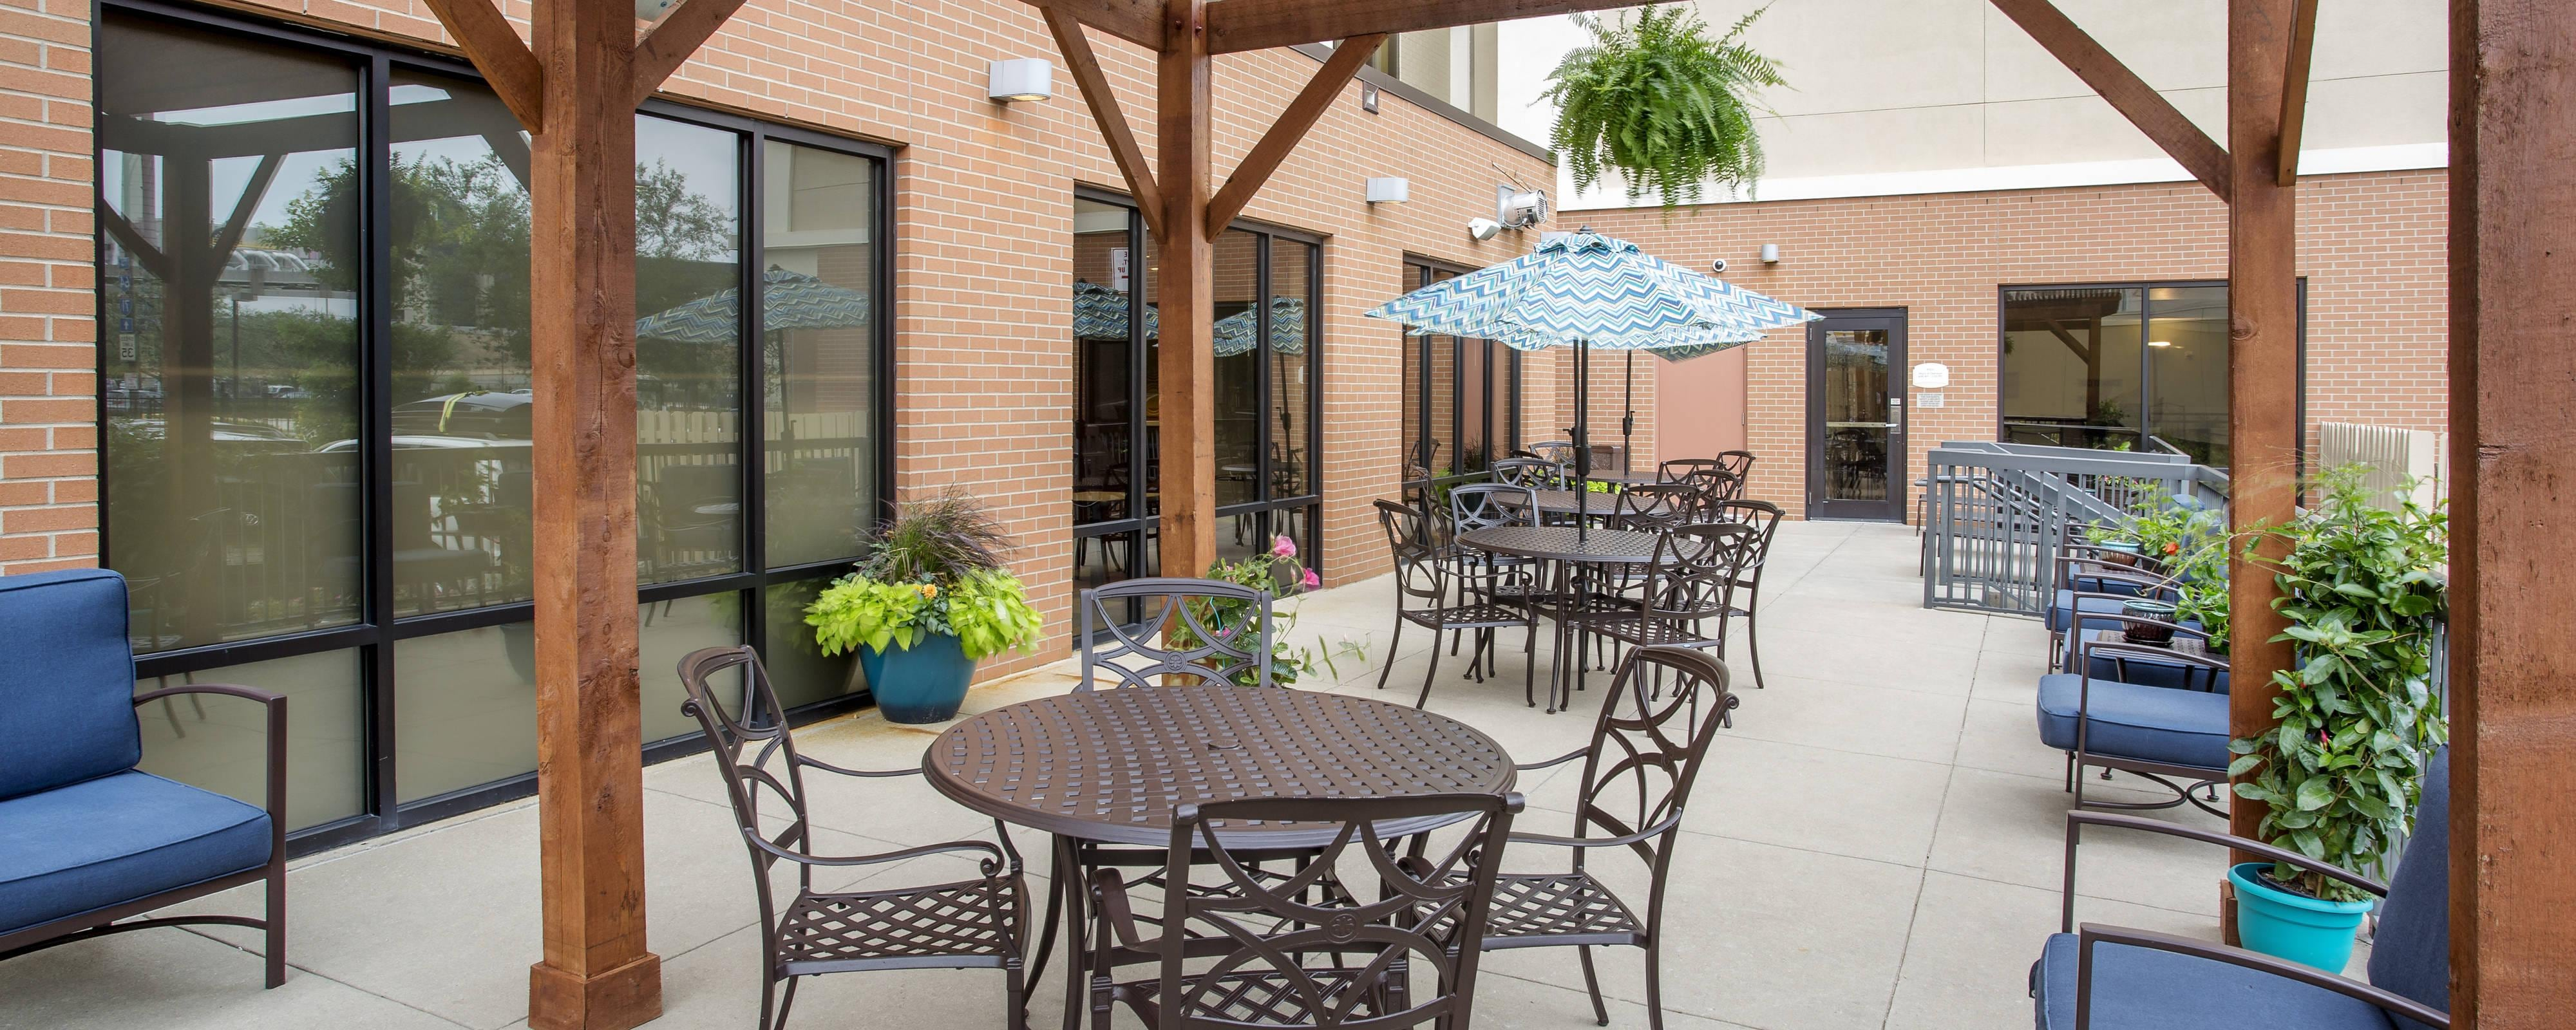 Downtown Louisville Hotel Patio